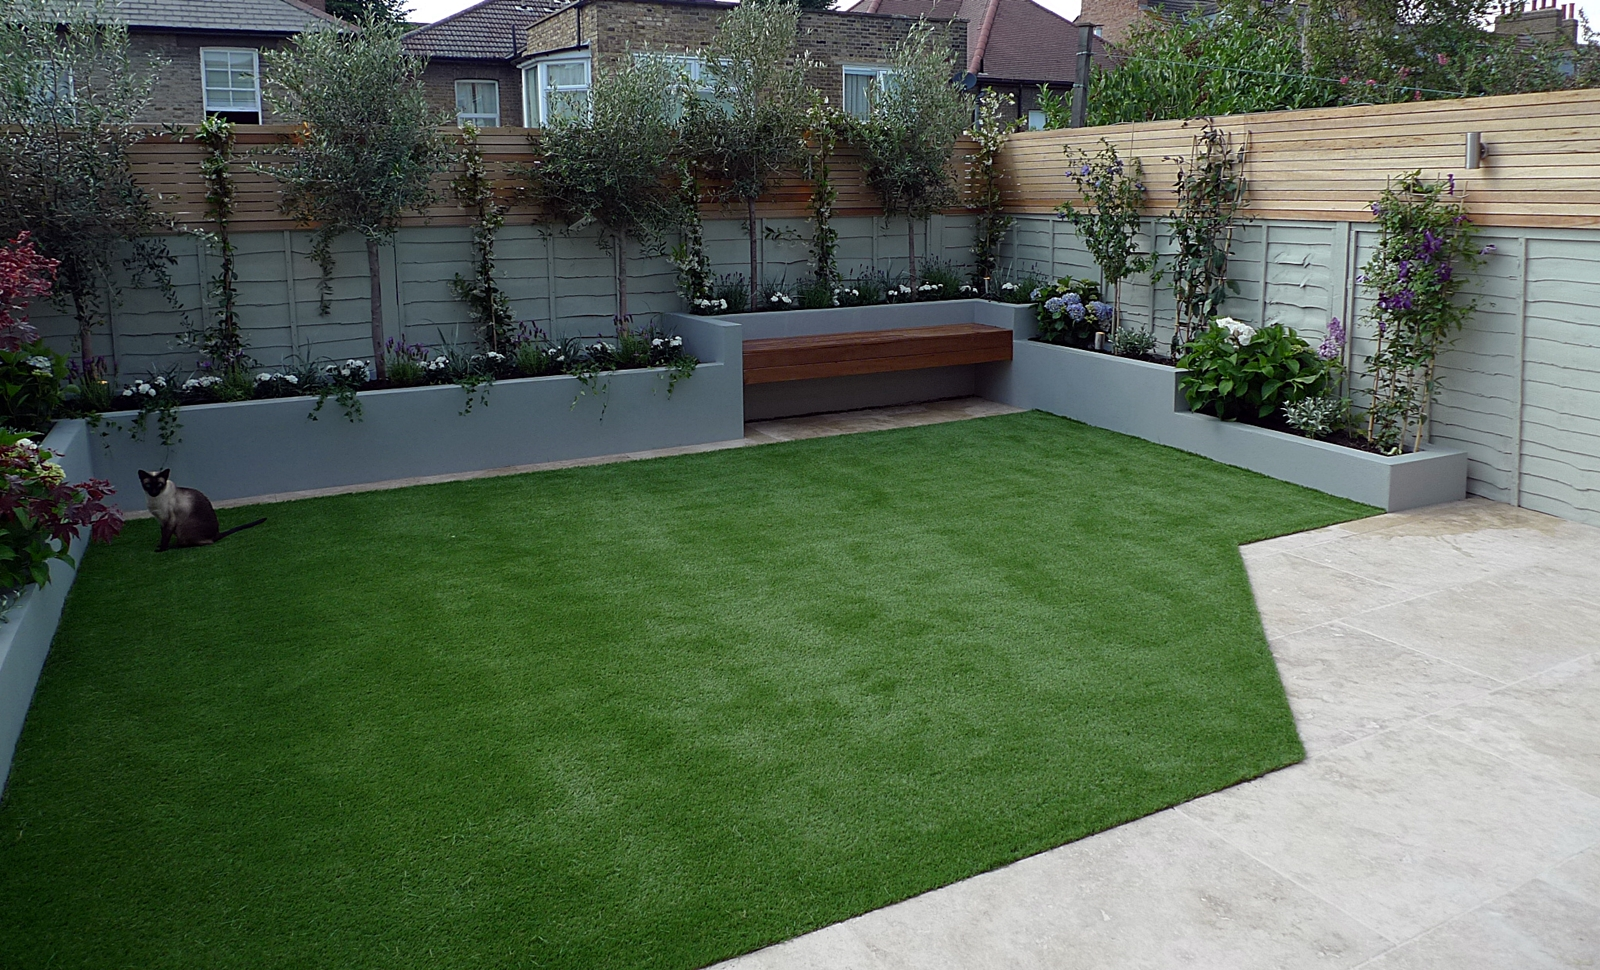 small garden design raised beds artificial grass travertine paving grey block render raised beds painted fence hardwood privacy screen balham clapham dulwich battersea fulahm chelsea